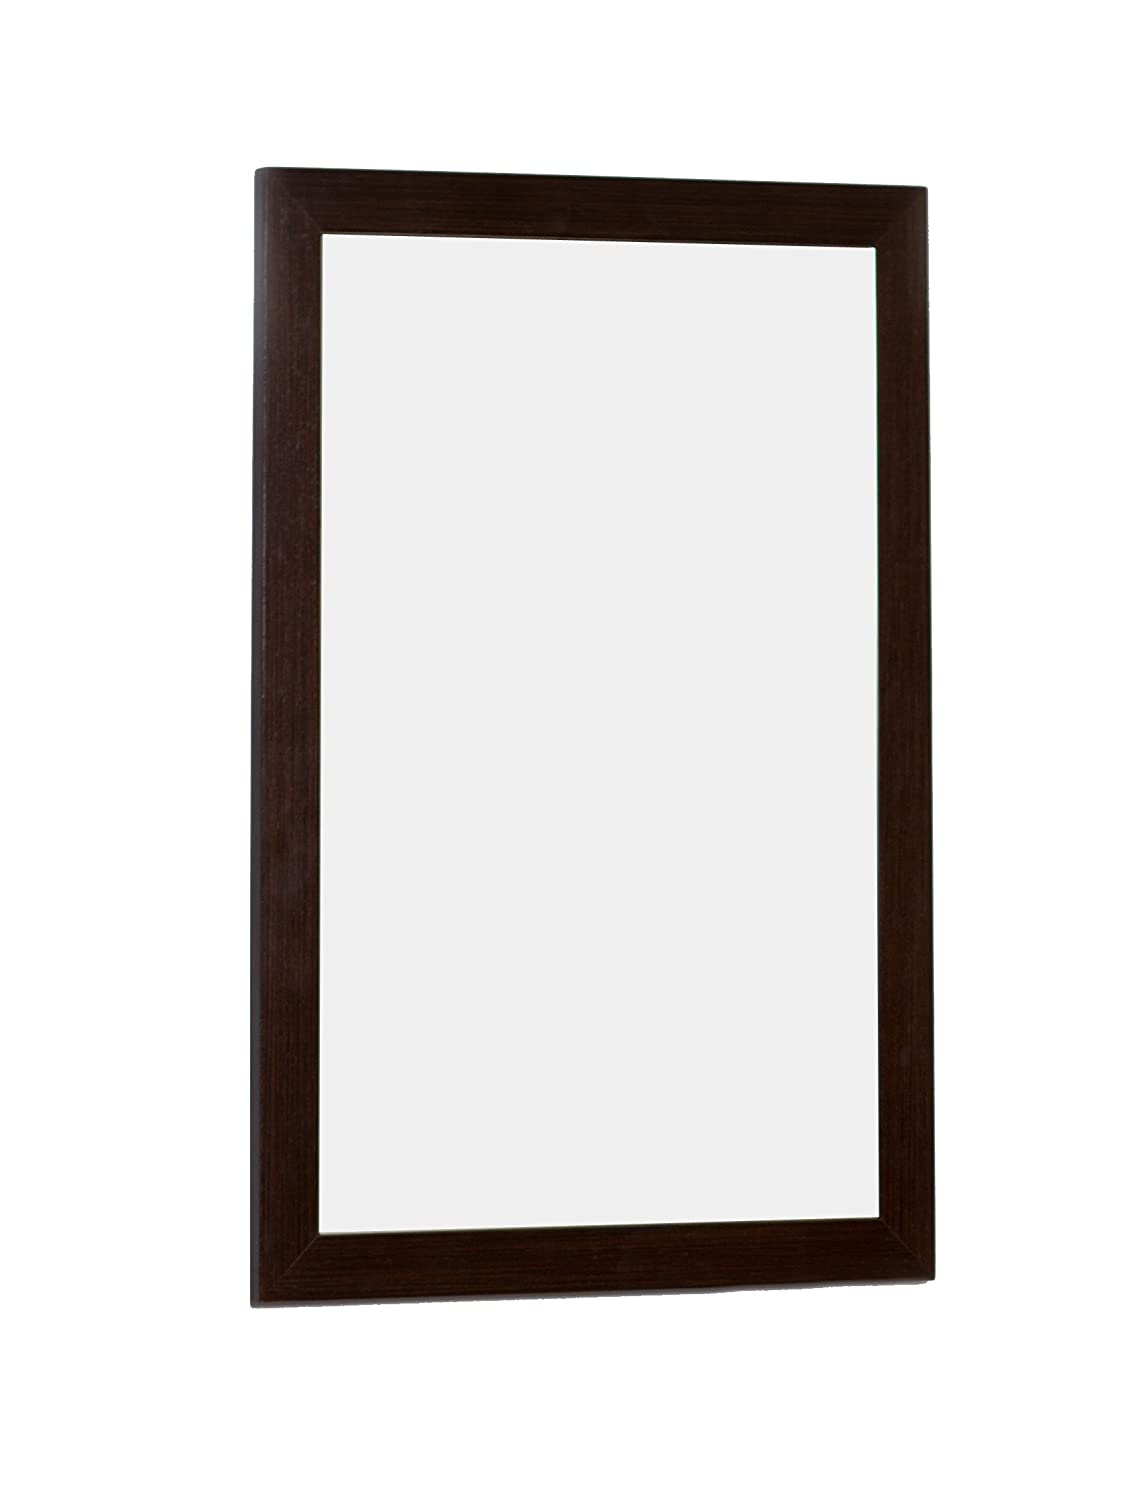 American Imaginations AI-4-1163 Modern Plywood-Melamine Wood Mirror, 21.5-Inch x 31.5-Inch, Wenge Finish